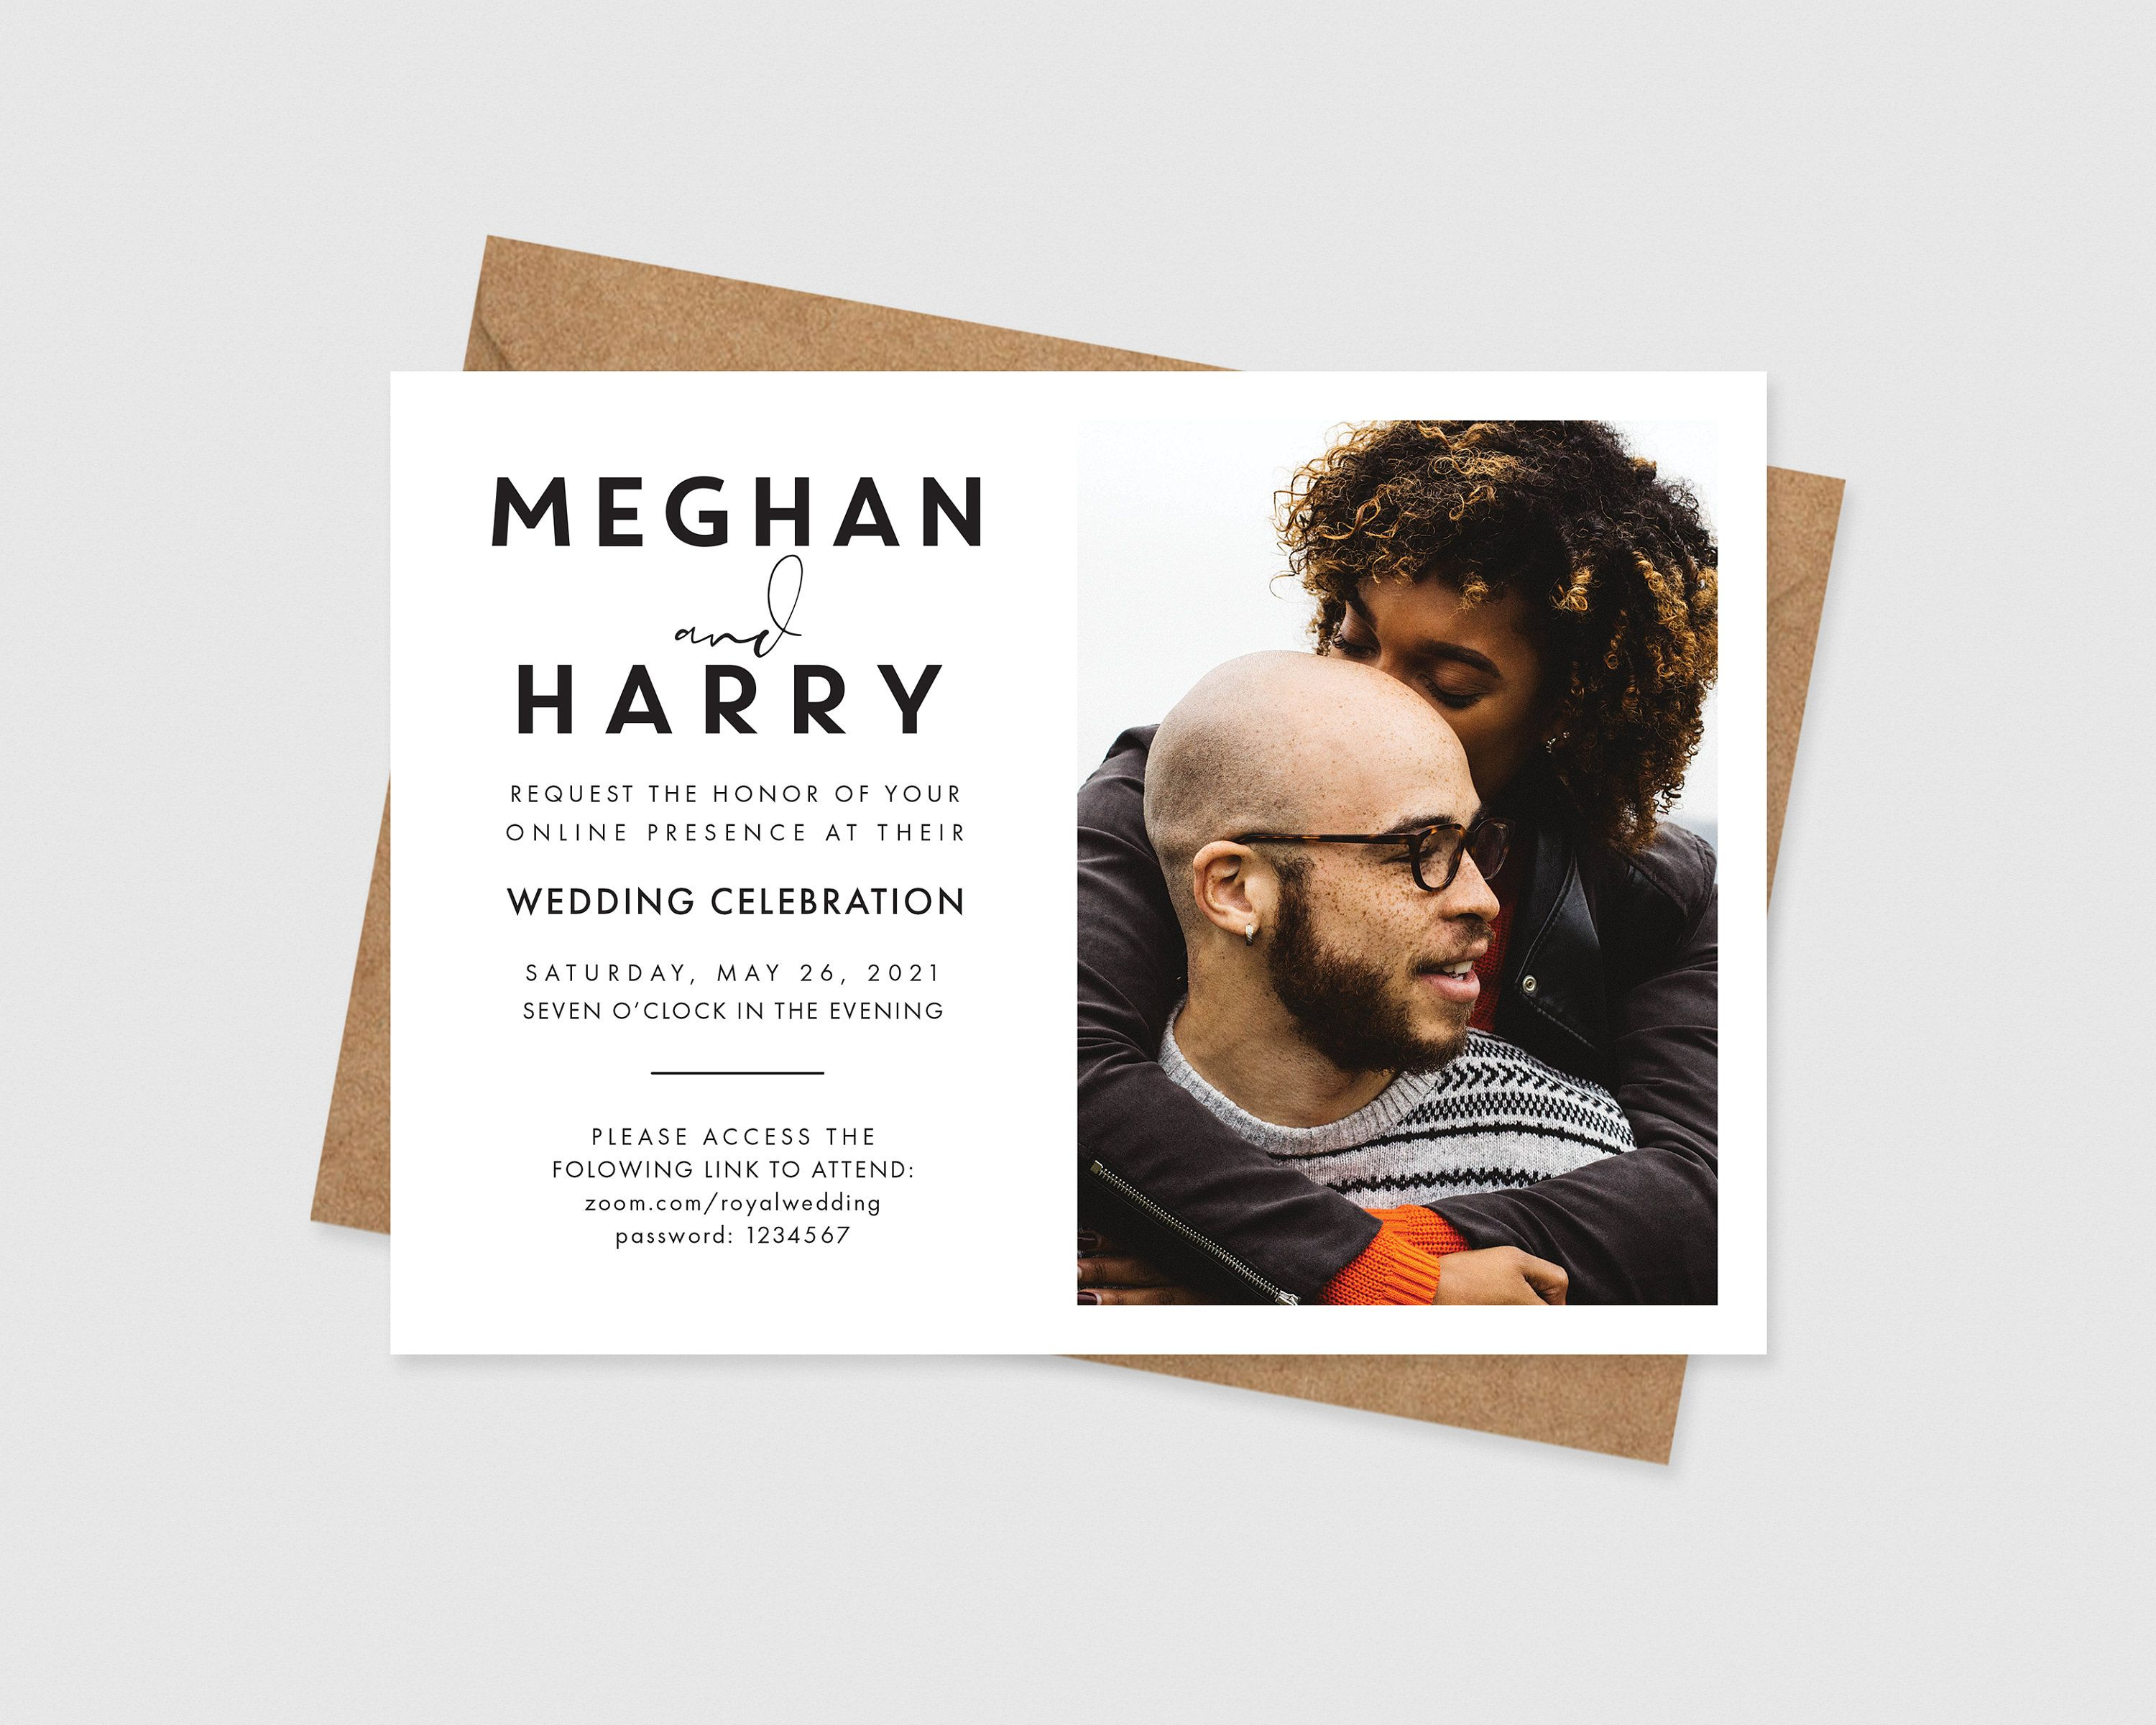 Photo Virtual Wedding Invitation Printable Modern Zoom Etsy In 2020 Wedding Invitations Online Wedding Invitation Styles Wedding Invitations